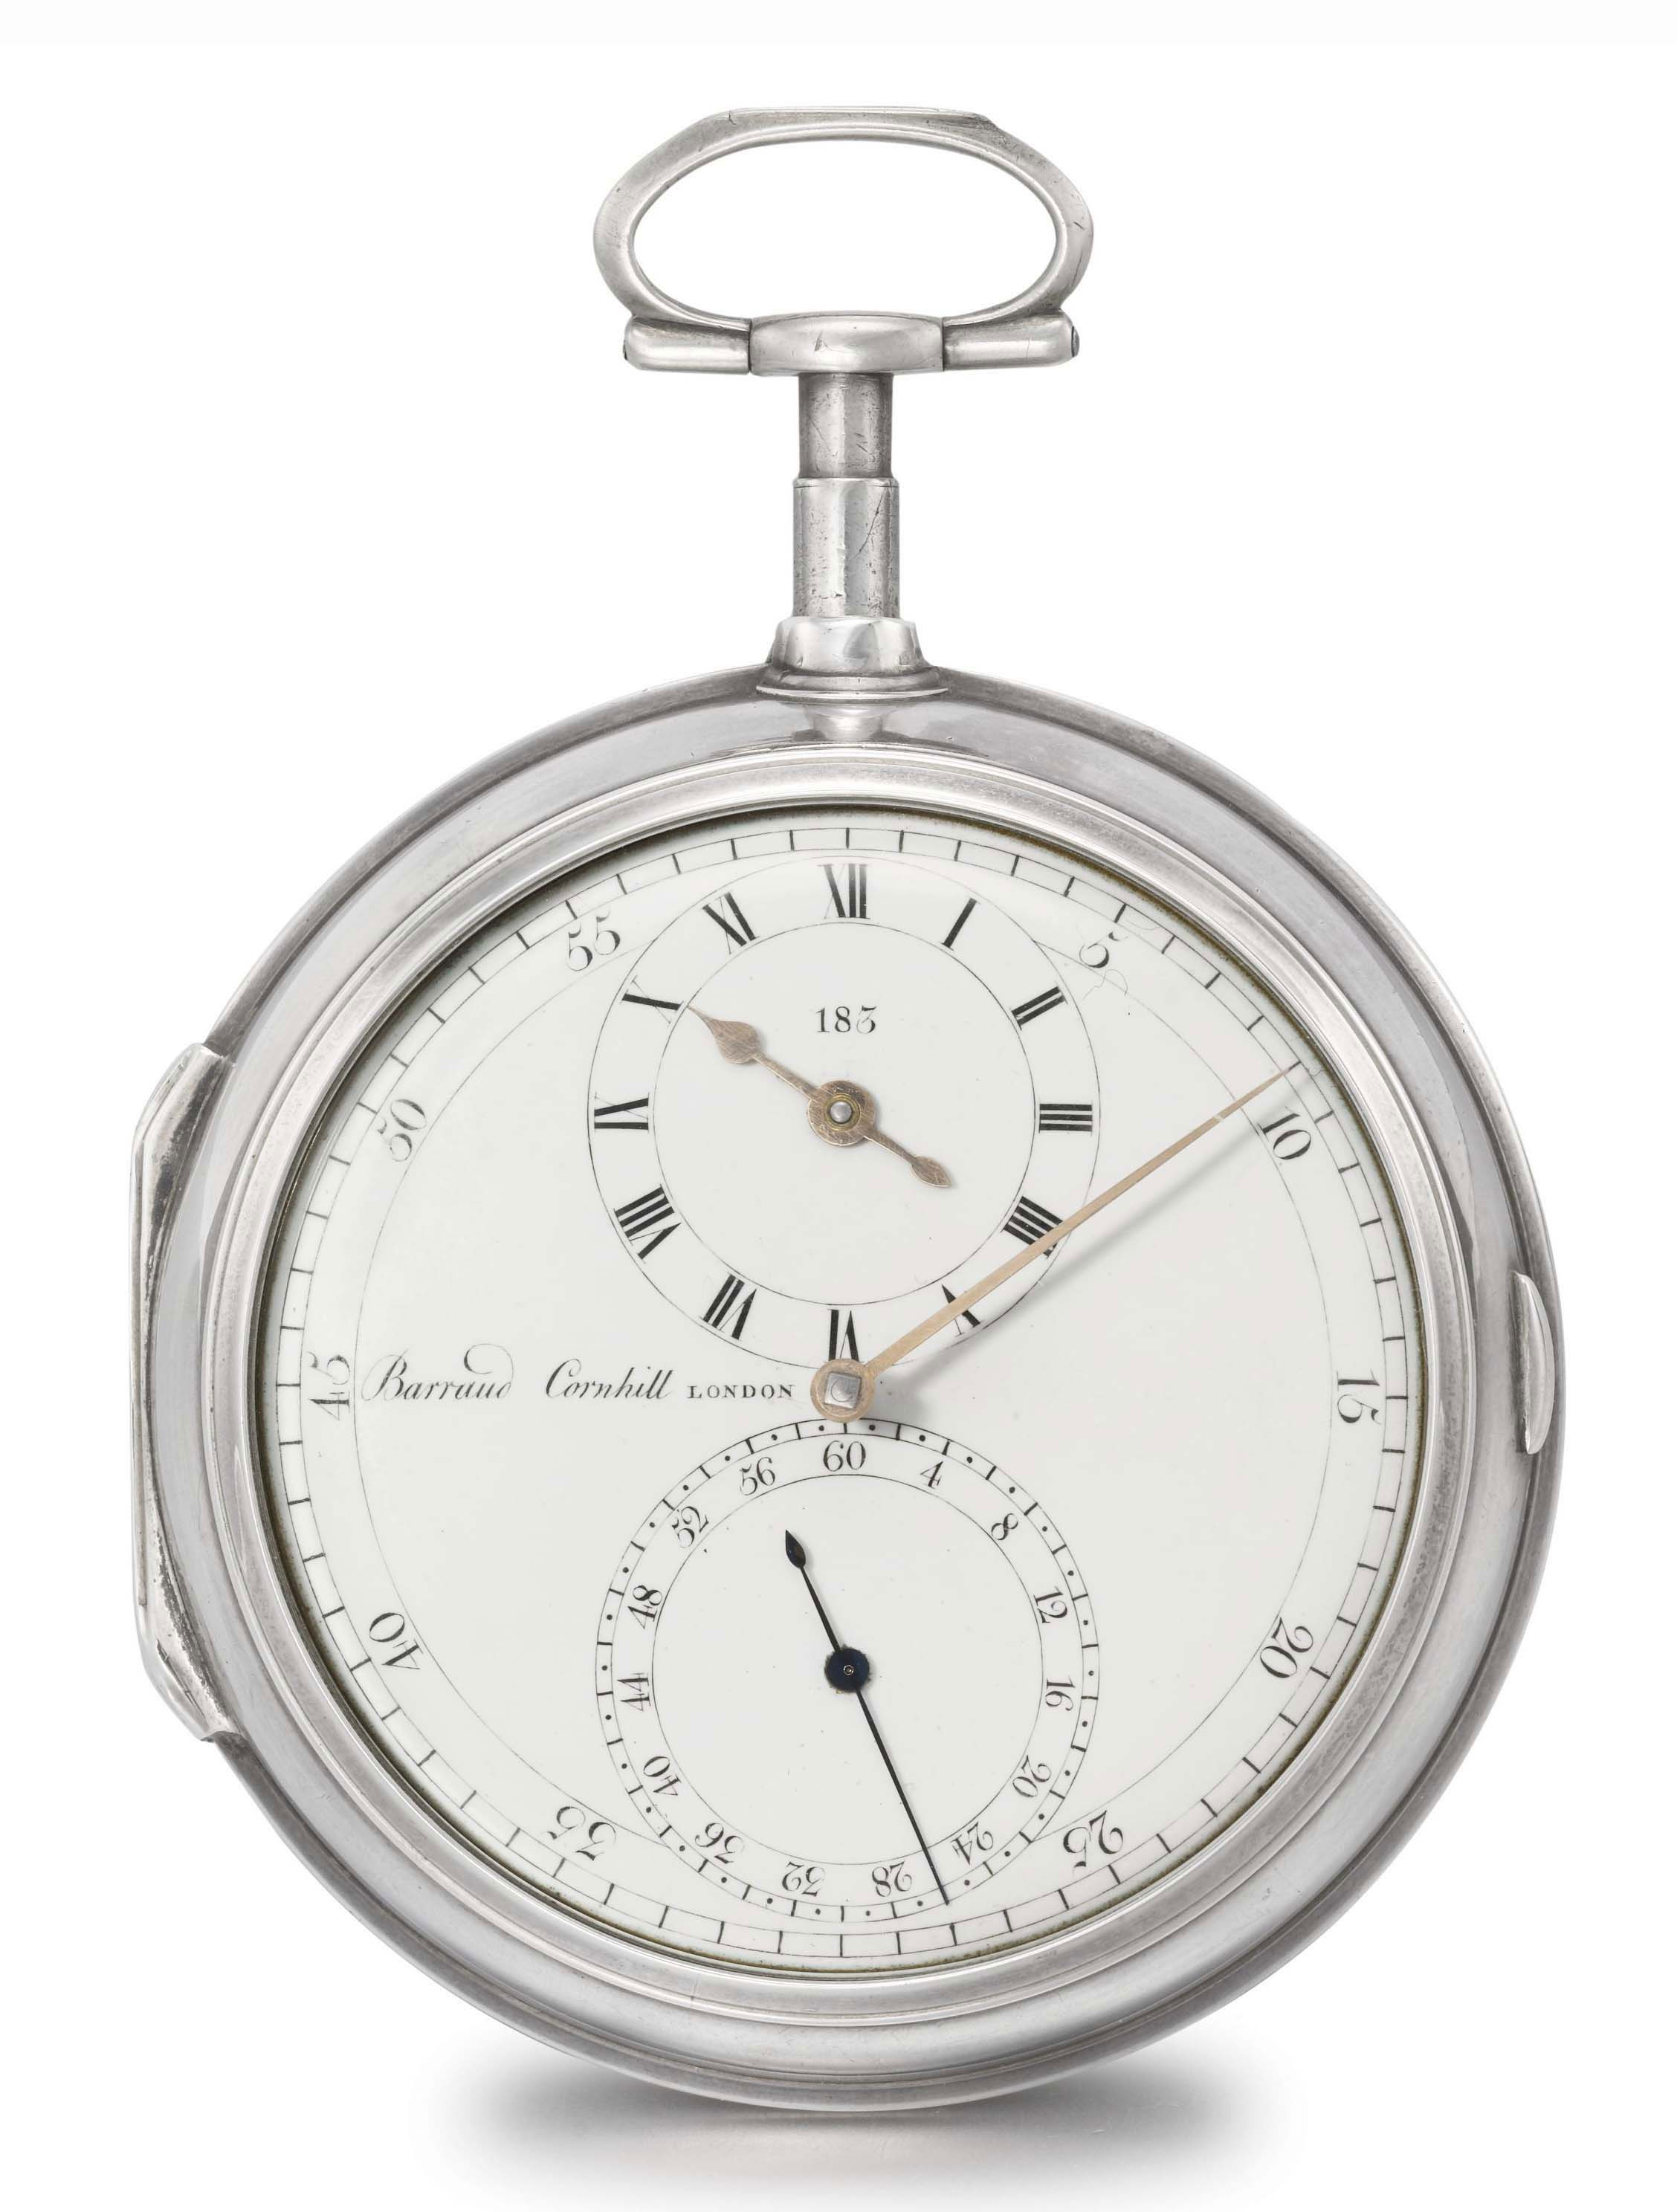 Barraud. A rare silver pair case openface pocket chronometer with Arnold's detent escapement and regulator dial